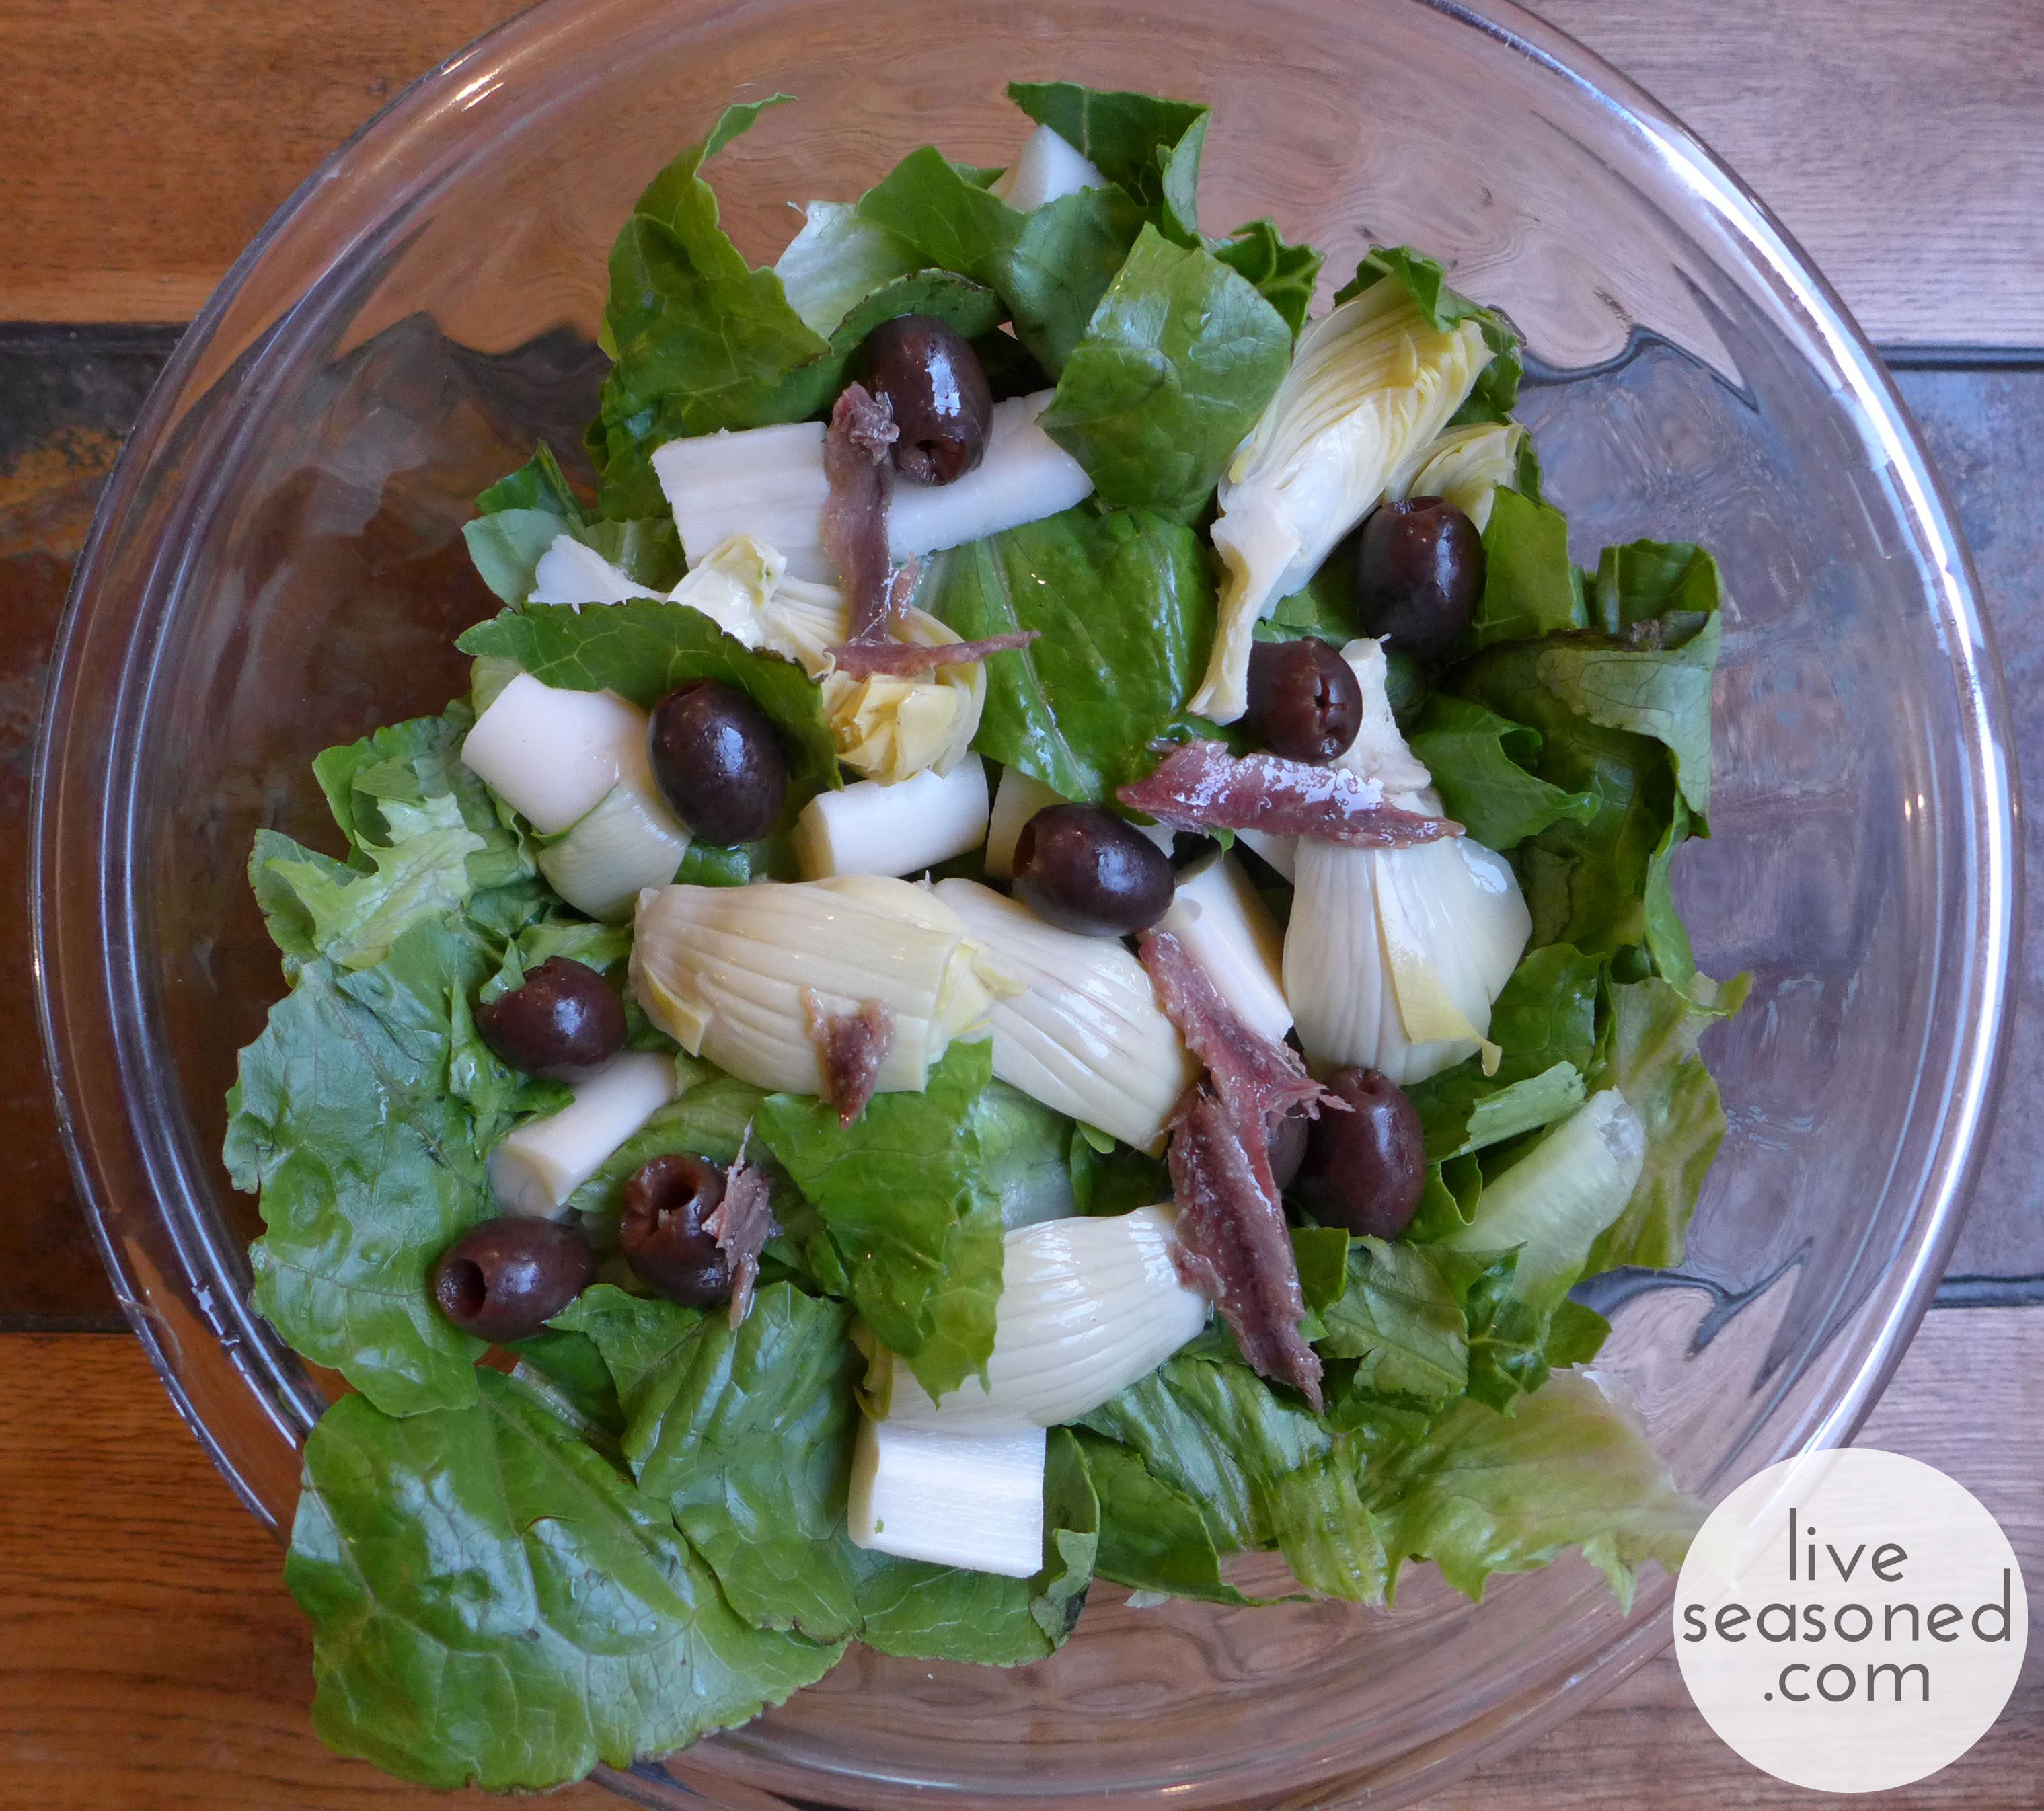 liveseasoned_w2015_wintersalad1_wm